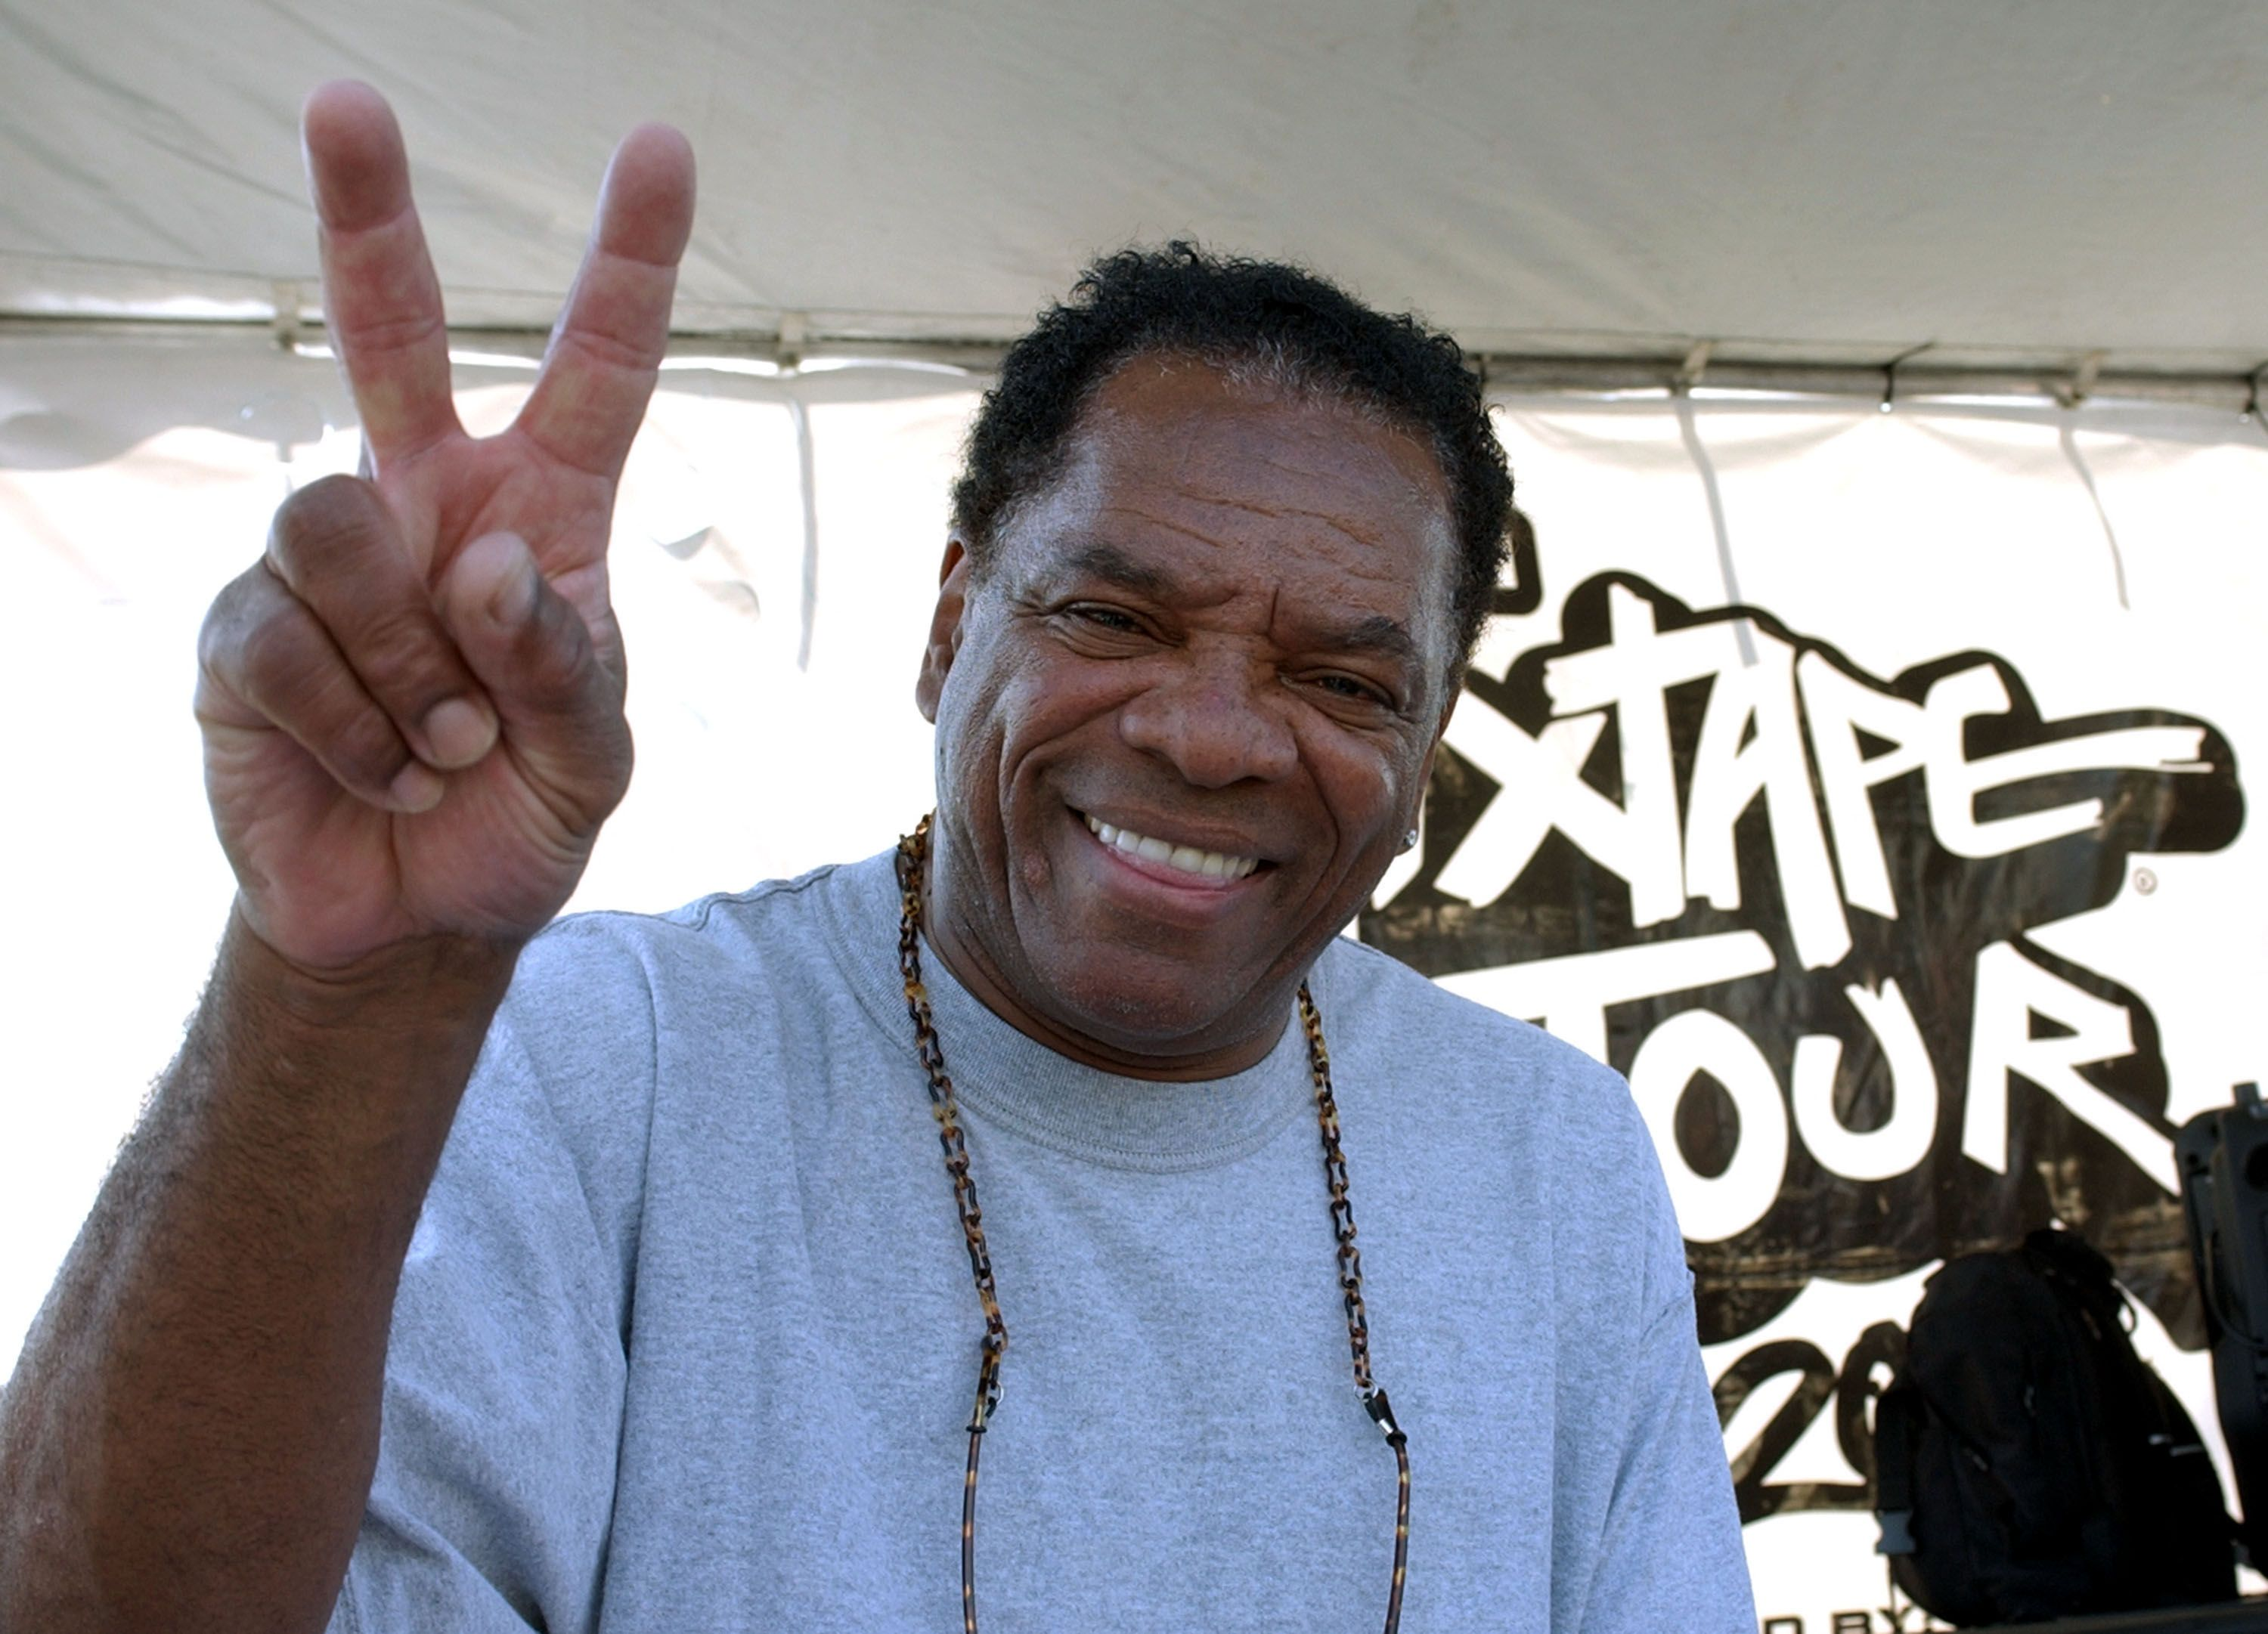 John Witherspoon looks on as Los Angeles Street Ballers compete for the chance to play against the 2004 Team AND1 on the blacktop of the The Great Western Fourm on June 9, 2004 | Photo: Getty Images